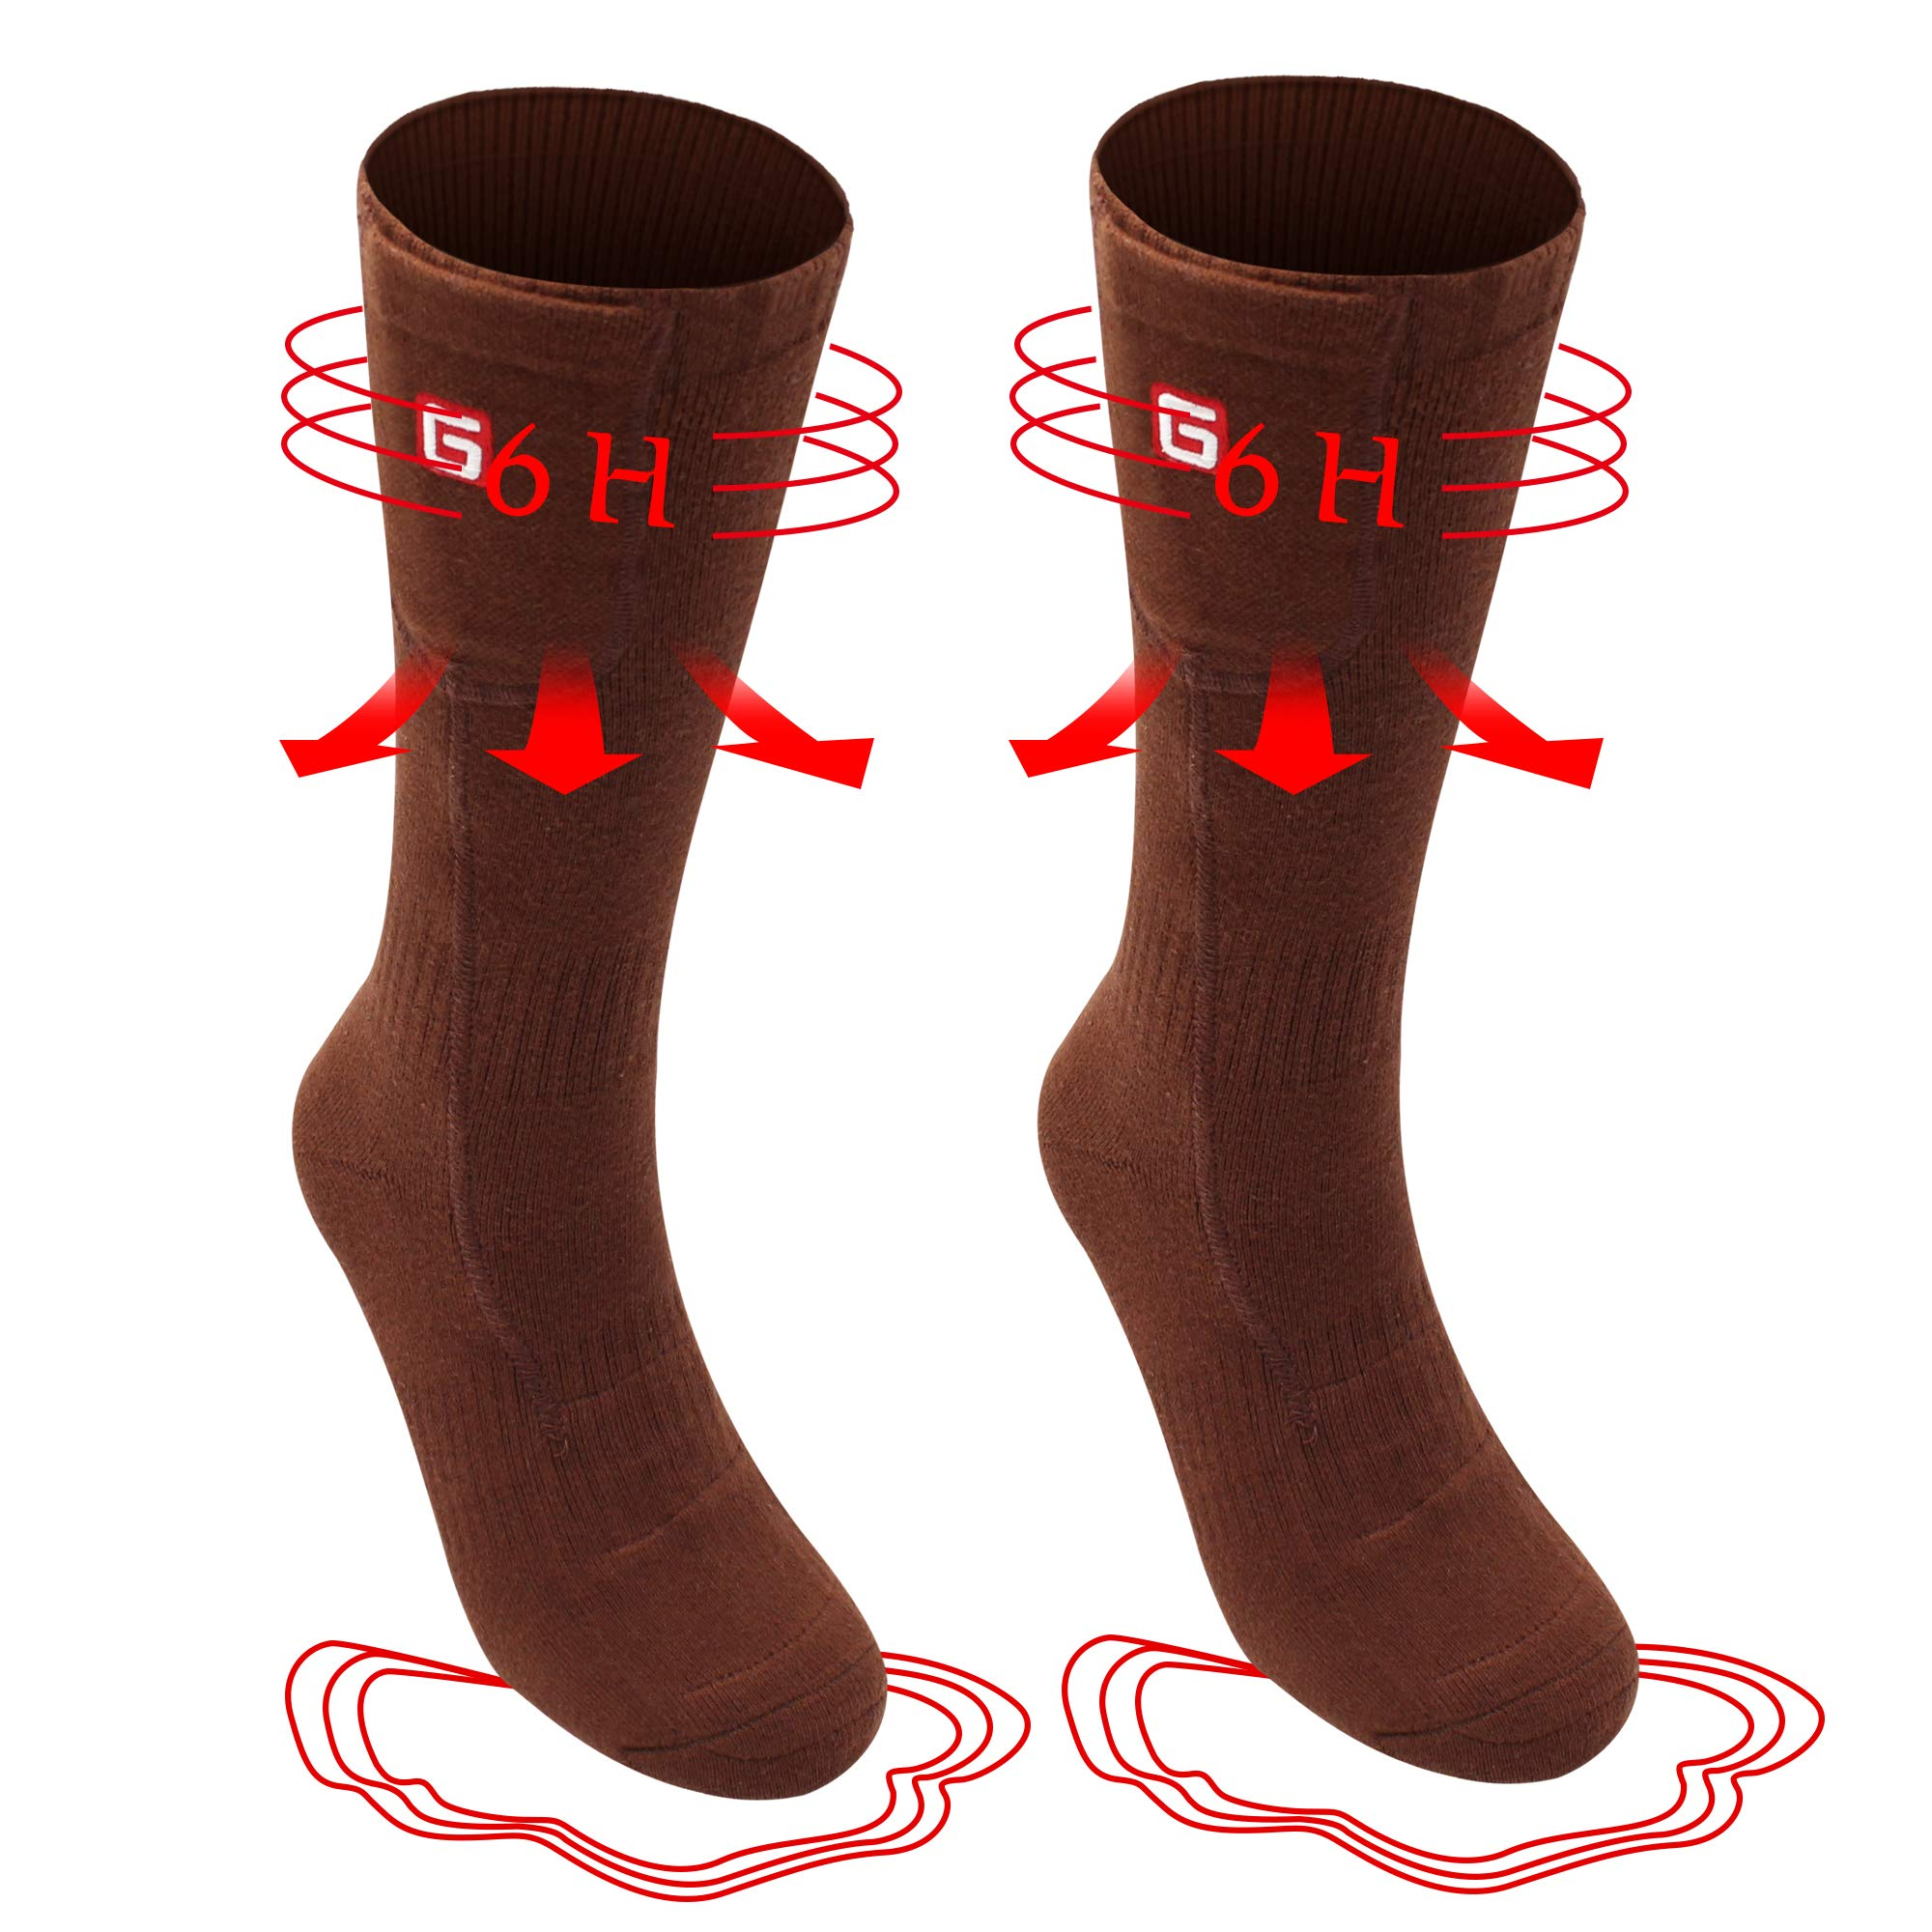 Rechargeable Electric Heated Socks Battery Powered Comfortable Thermal Stockings 3 Heating Settings Winter Cotton Warm Unisex Novelty Insulated Heated Sox Kits for Cold Feet,Heating up to 3-6.5 Hours by Daintymuse